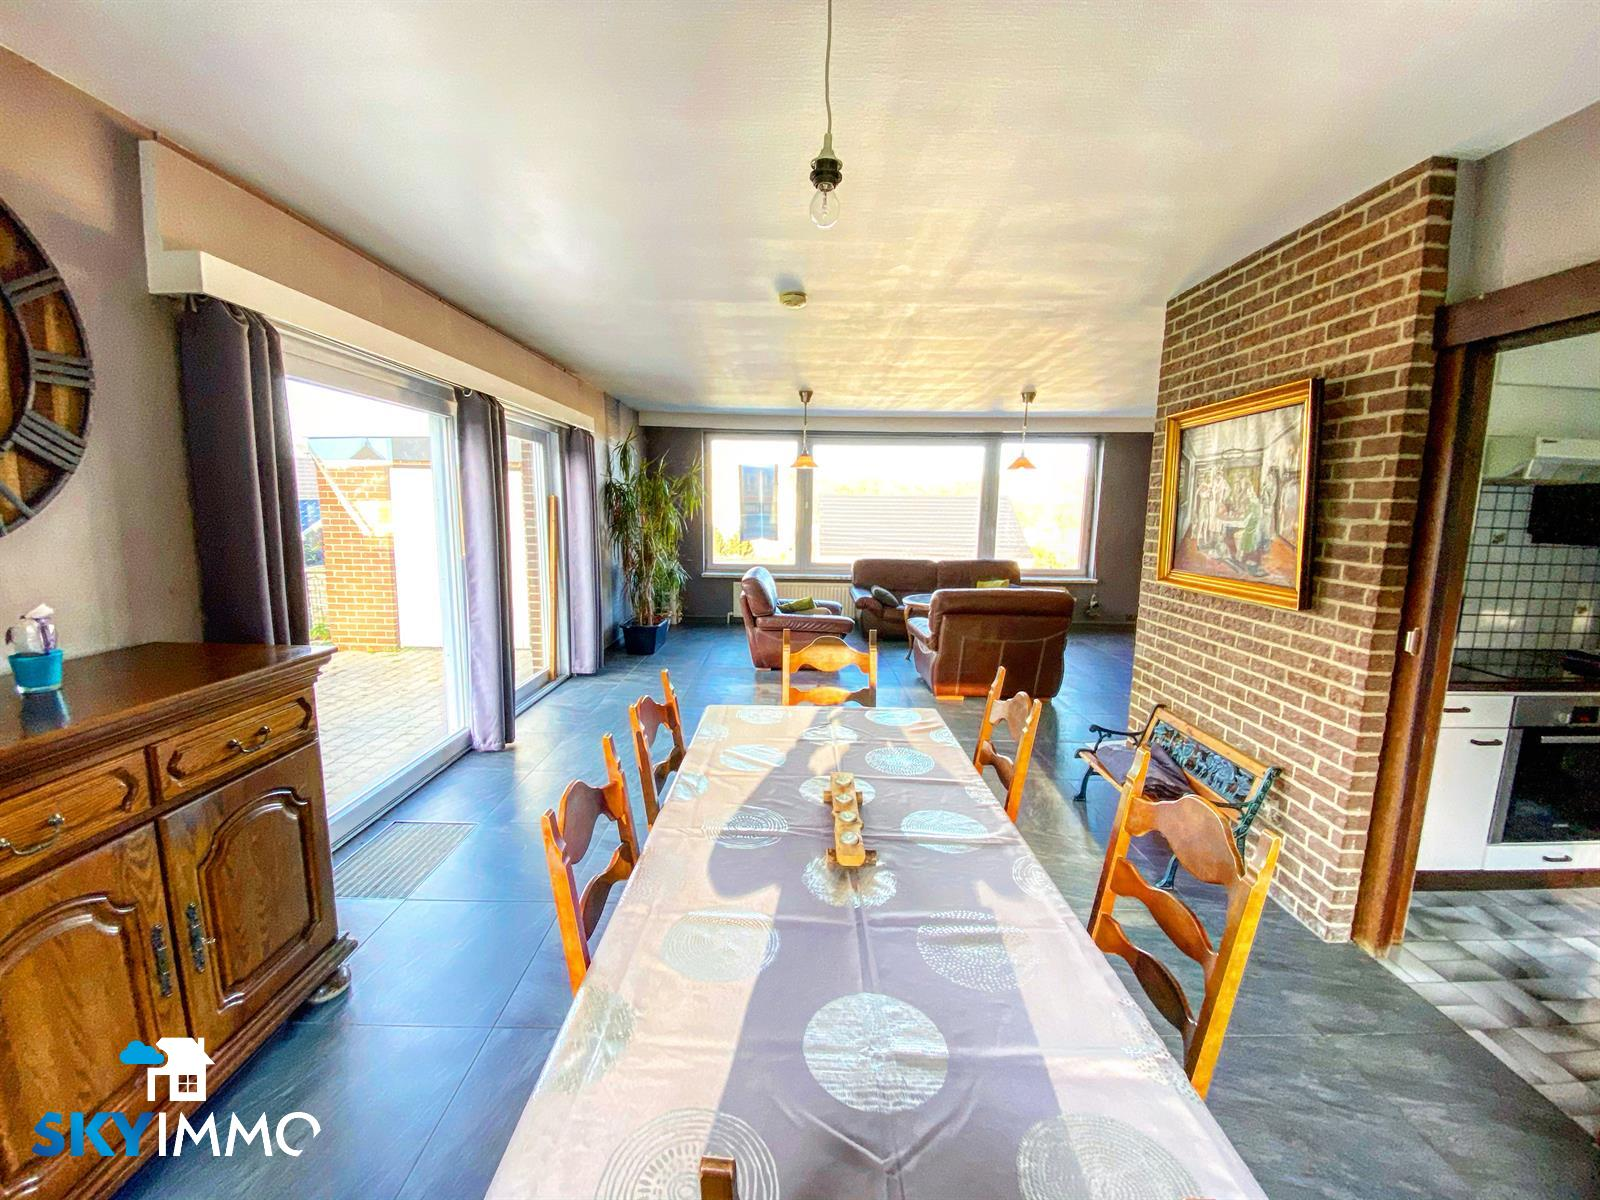 Bungalow - Flemalle - #4363206-9